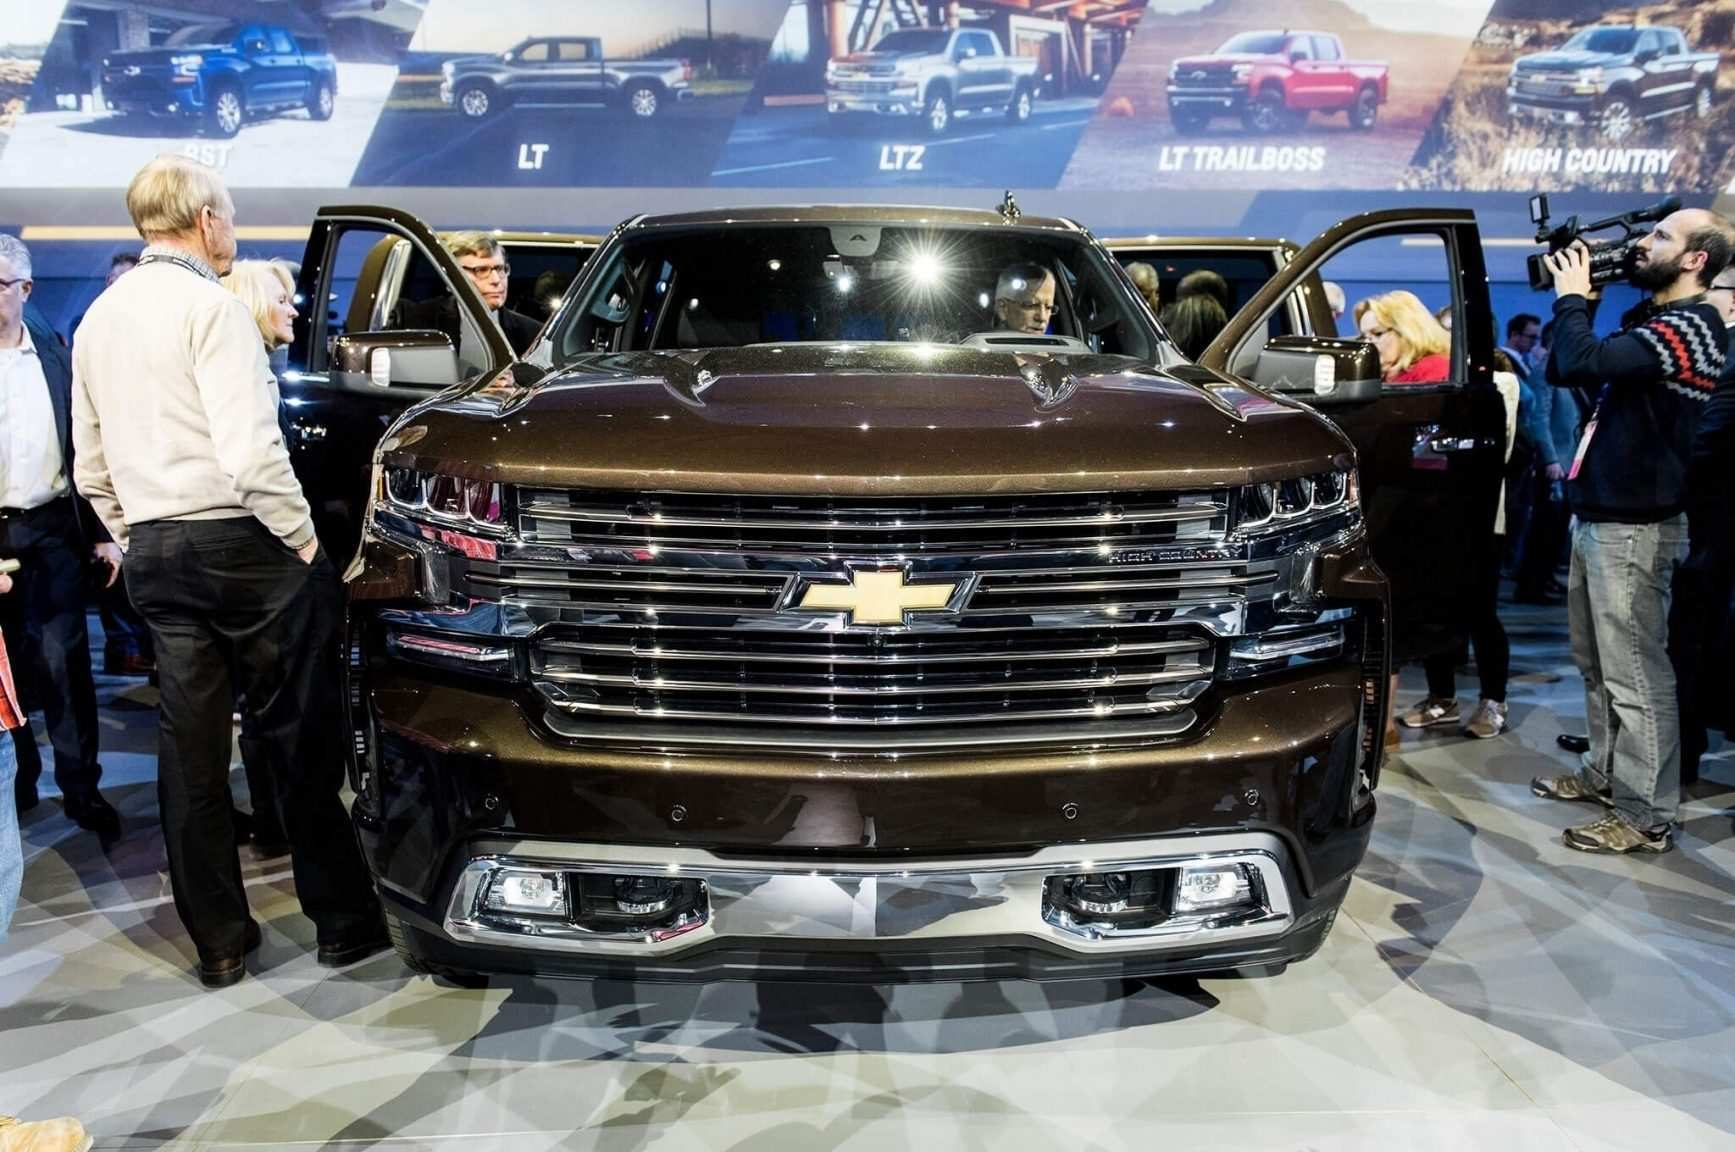 81 All New 2020 Chevy Suburban Concept And Review